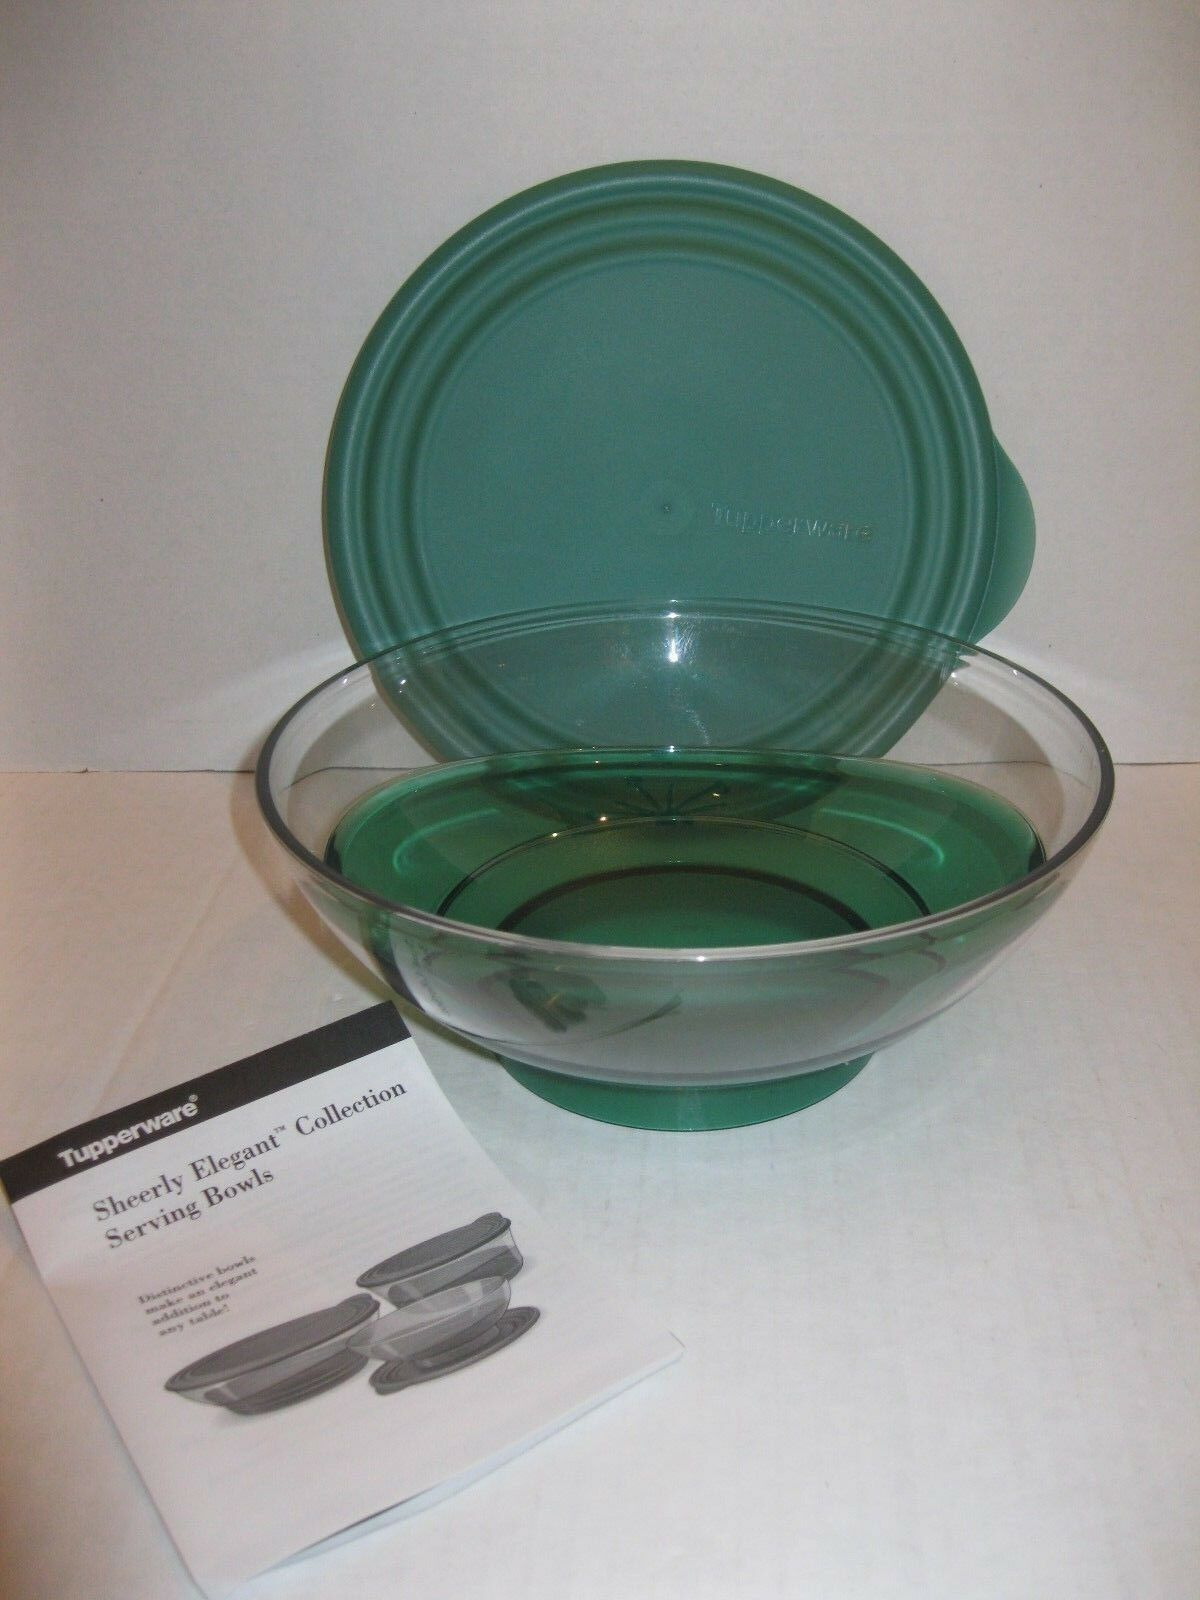 Tupperware Sheerly Elegant Acrylic 15 L Serving Bowl Green 6 1 Eleganzia 600ml 4 Set Of 4only Available